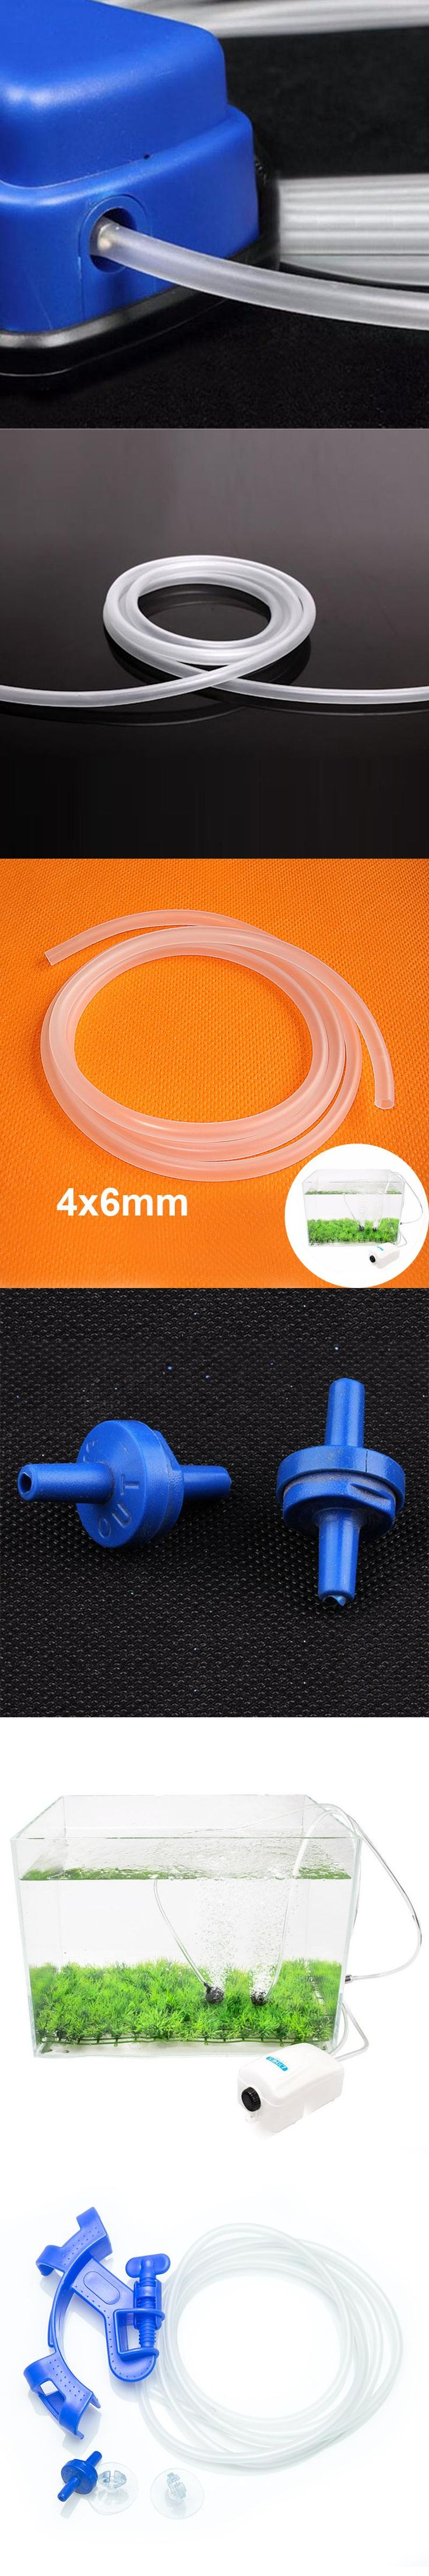 Aquarium Air Stone 4*6mm Oxygen Pump Hose for Air Bubble Fish Tank Pond Pump for Fish Aquarium decoration Accessories 3M 5M 10M